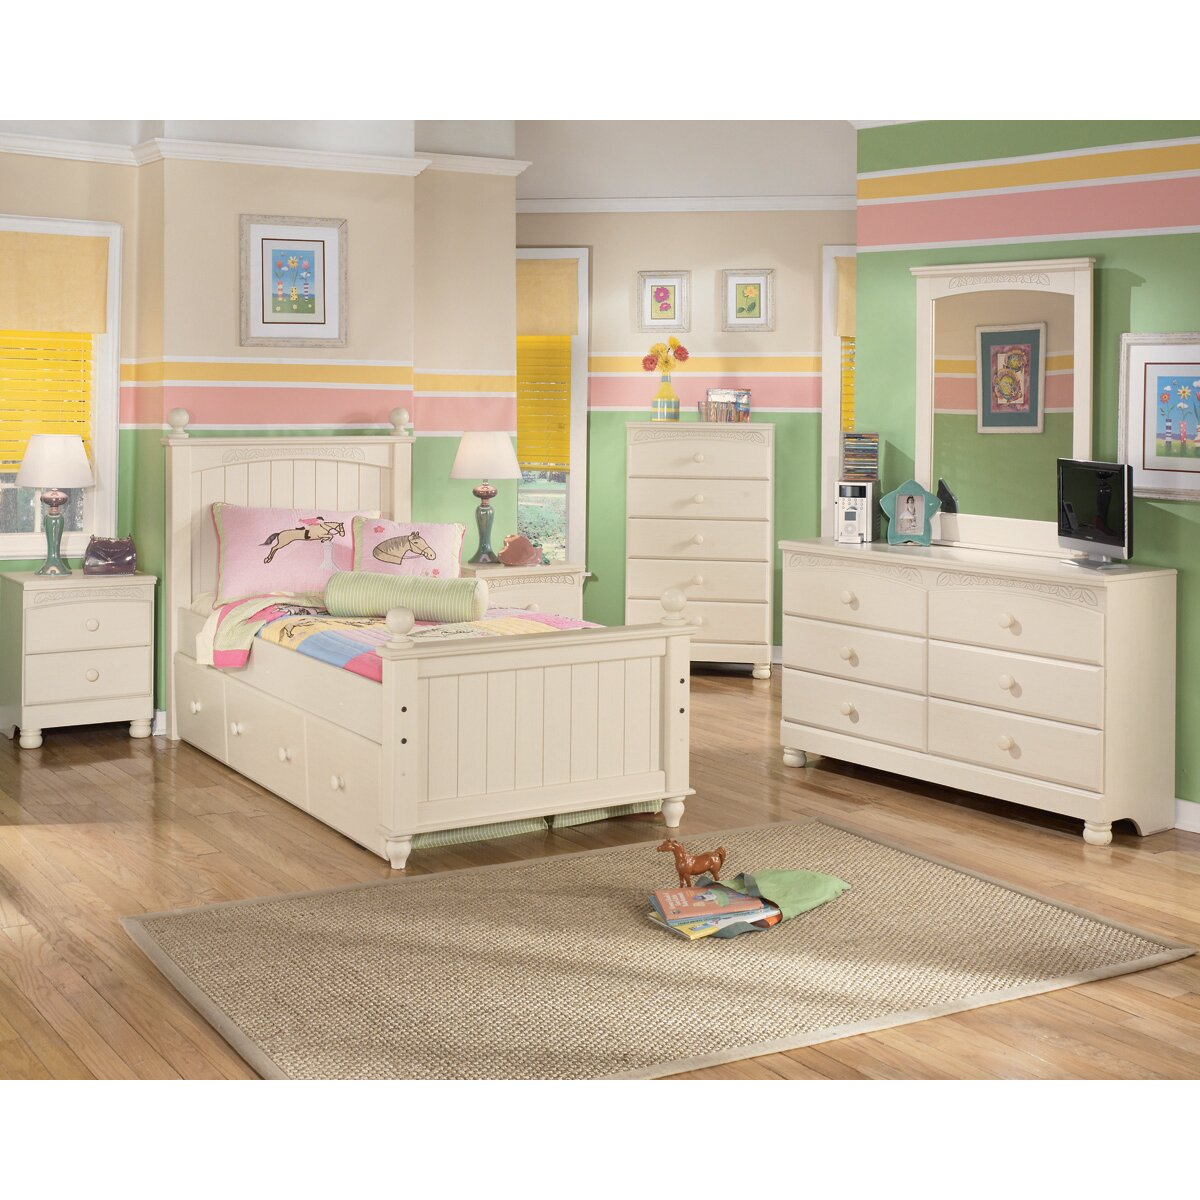 Signature design by ashley cottage retreat platform customizable bedroom set reviews wayfair Cottage retreat collection bedroom furniture